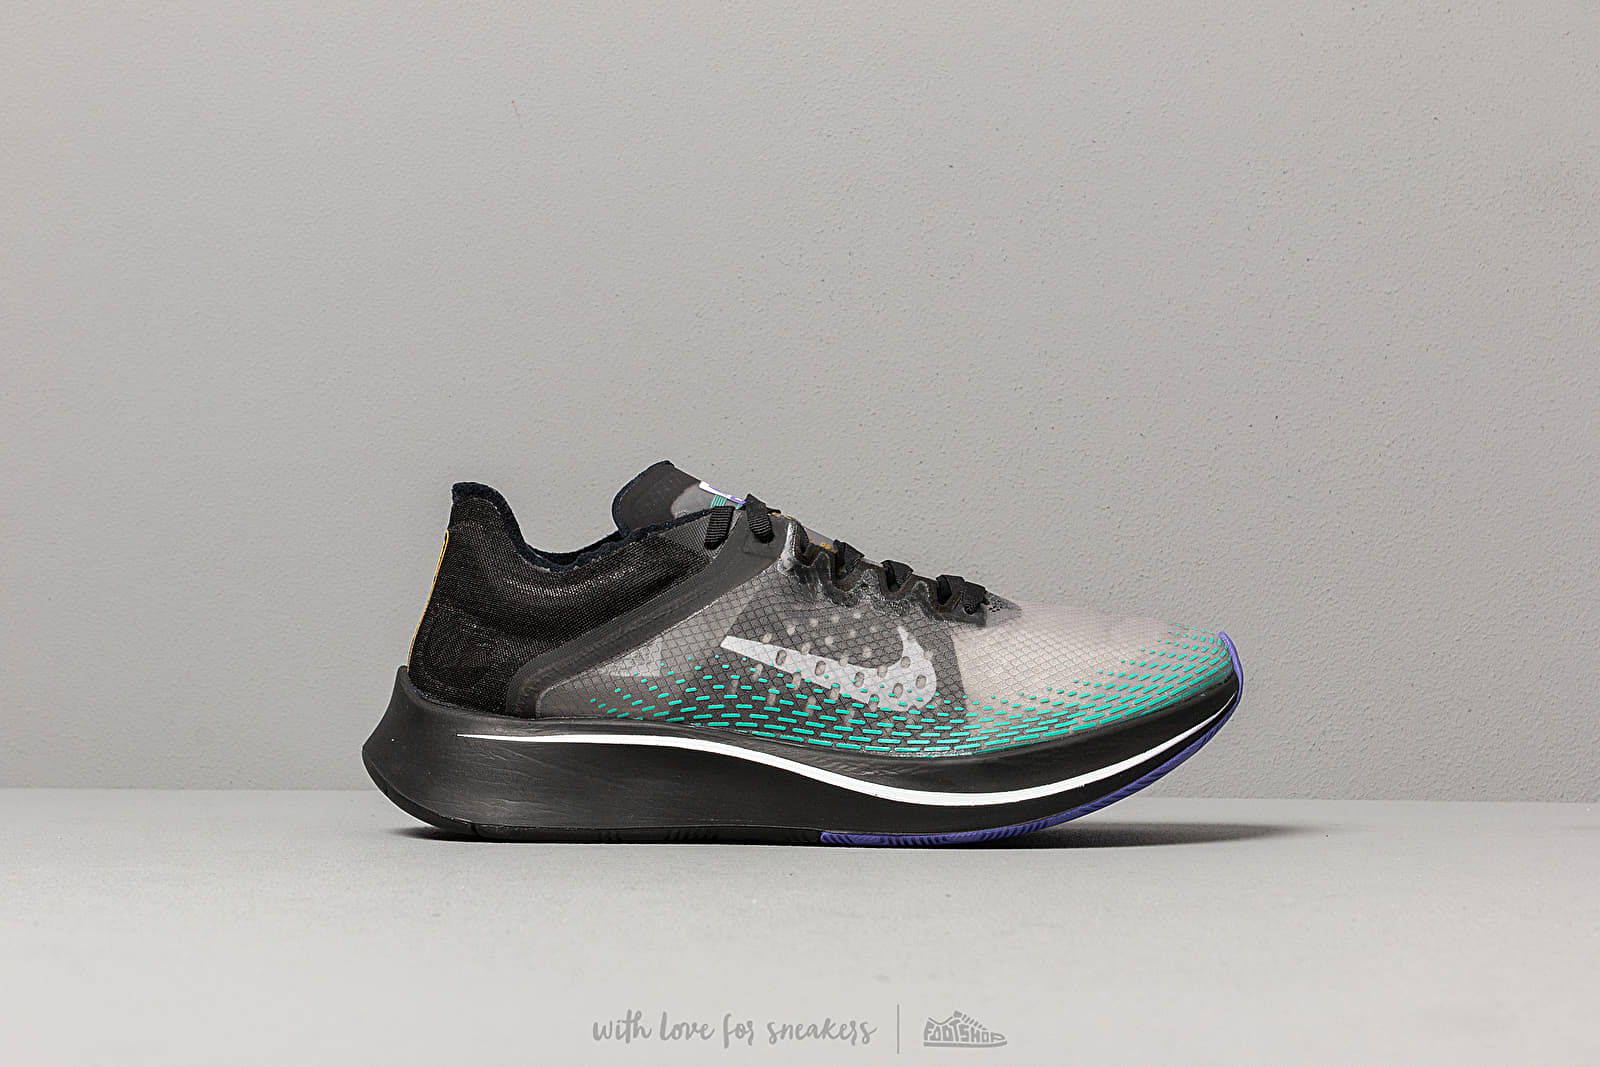 a5dbf1a4c0022 Nike Zoom Fly Sp Fast Black  White-Hyper Jade at a great price 158